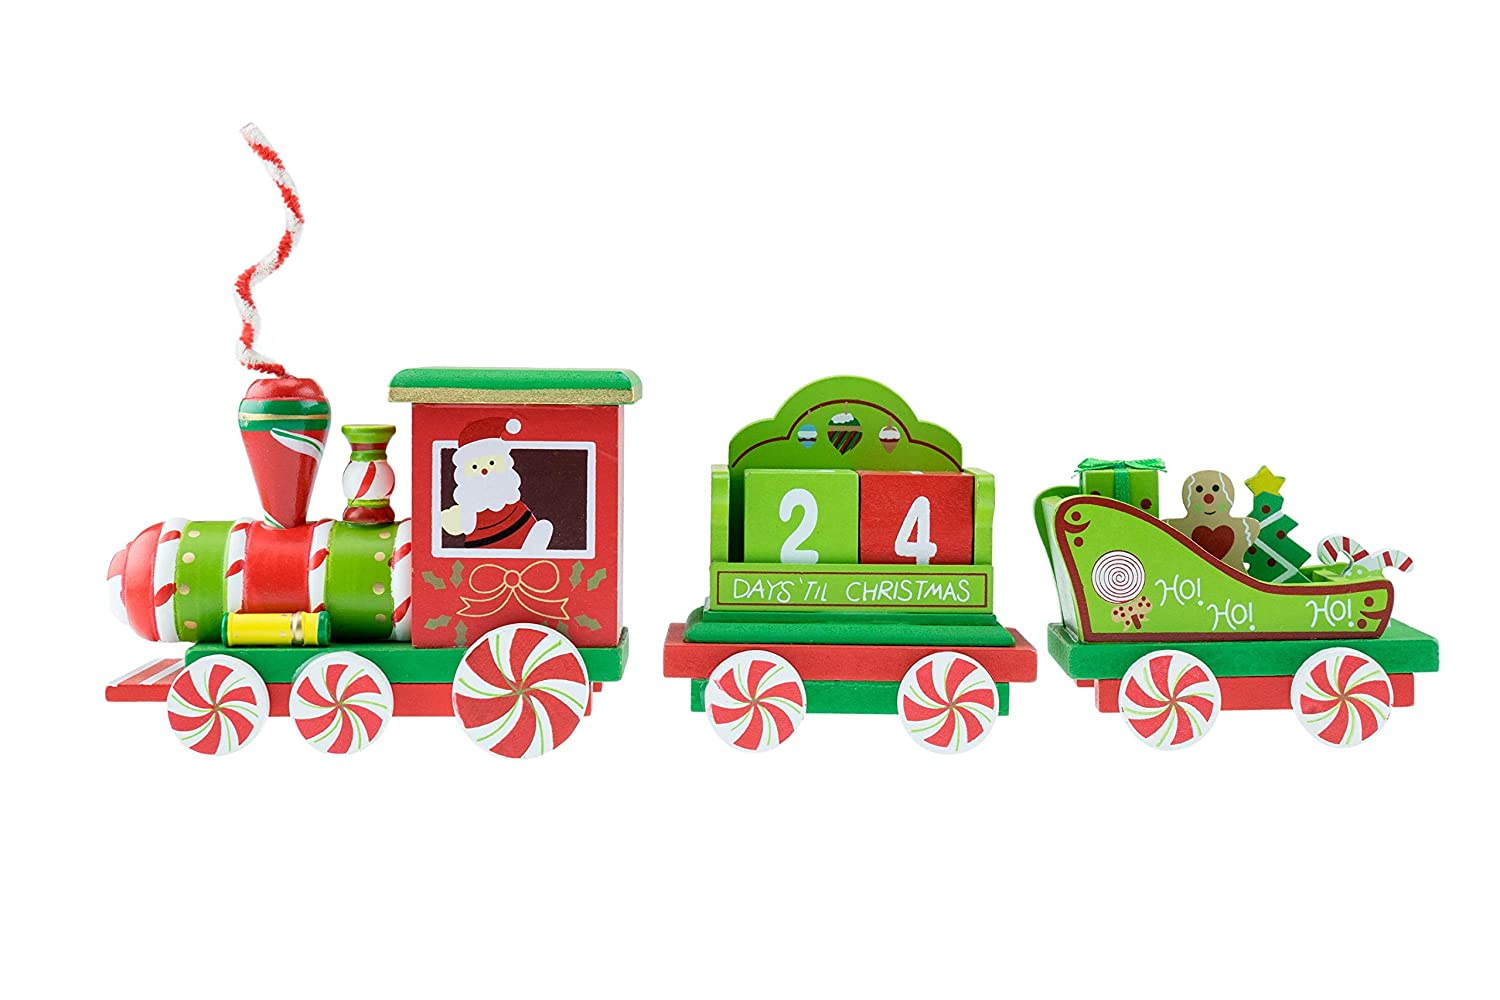 Clever Creations Train Candy Advent Calendar   Removable Cubes to Count Down Days   Peppermint Candy Painted Theme Train   Perfect Christmas Theme   Stands at 5 Tall Perfect for Shelves and Tables